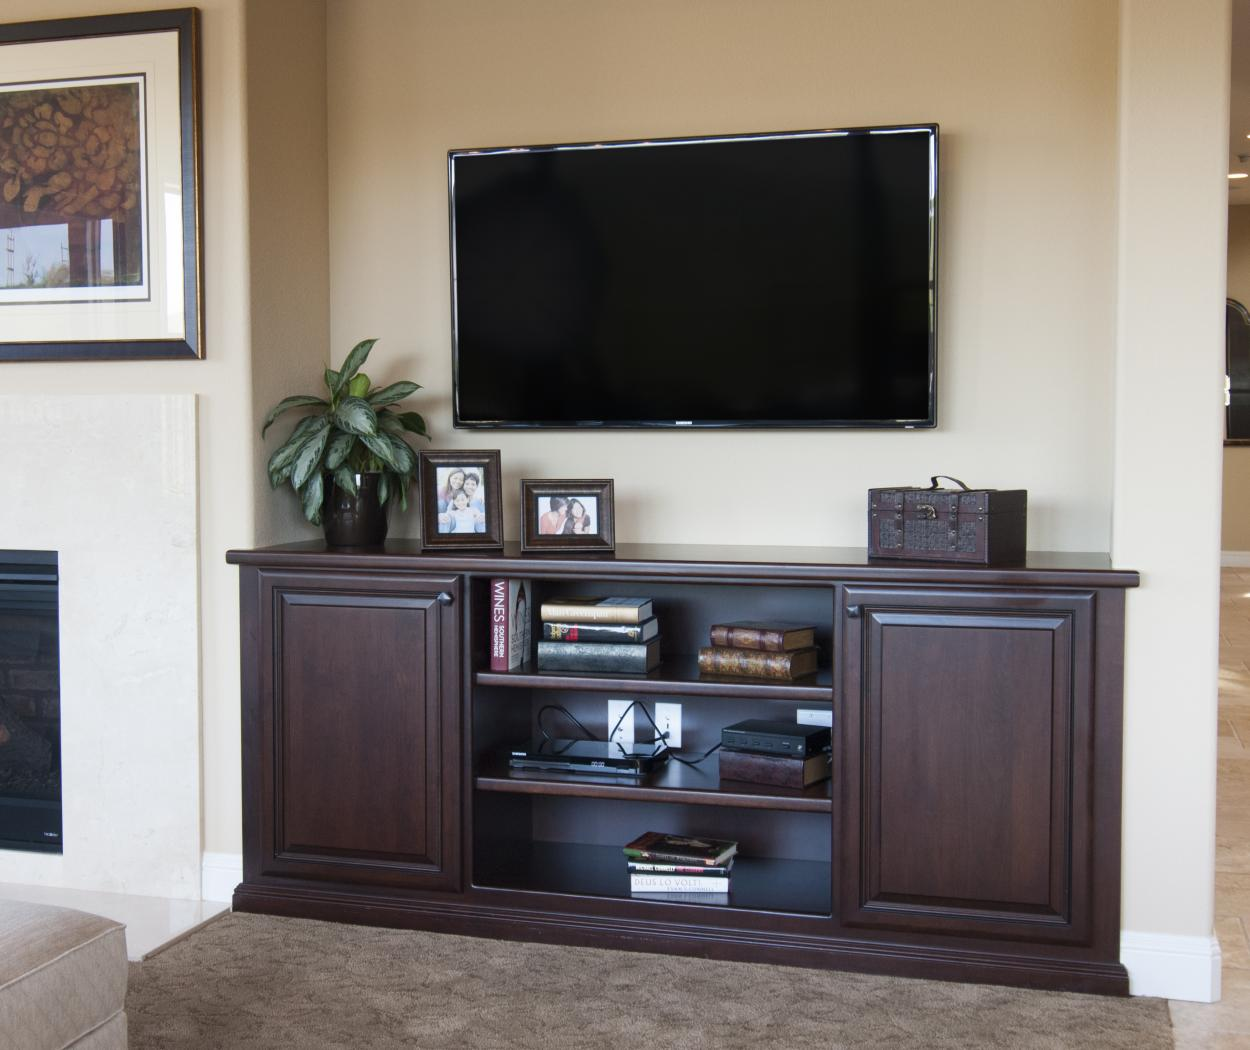 Traditional Entertainment Center made in Cherry and Finished with an Mahogany Stain